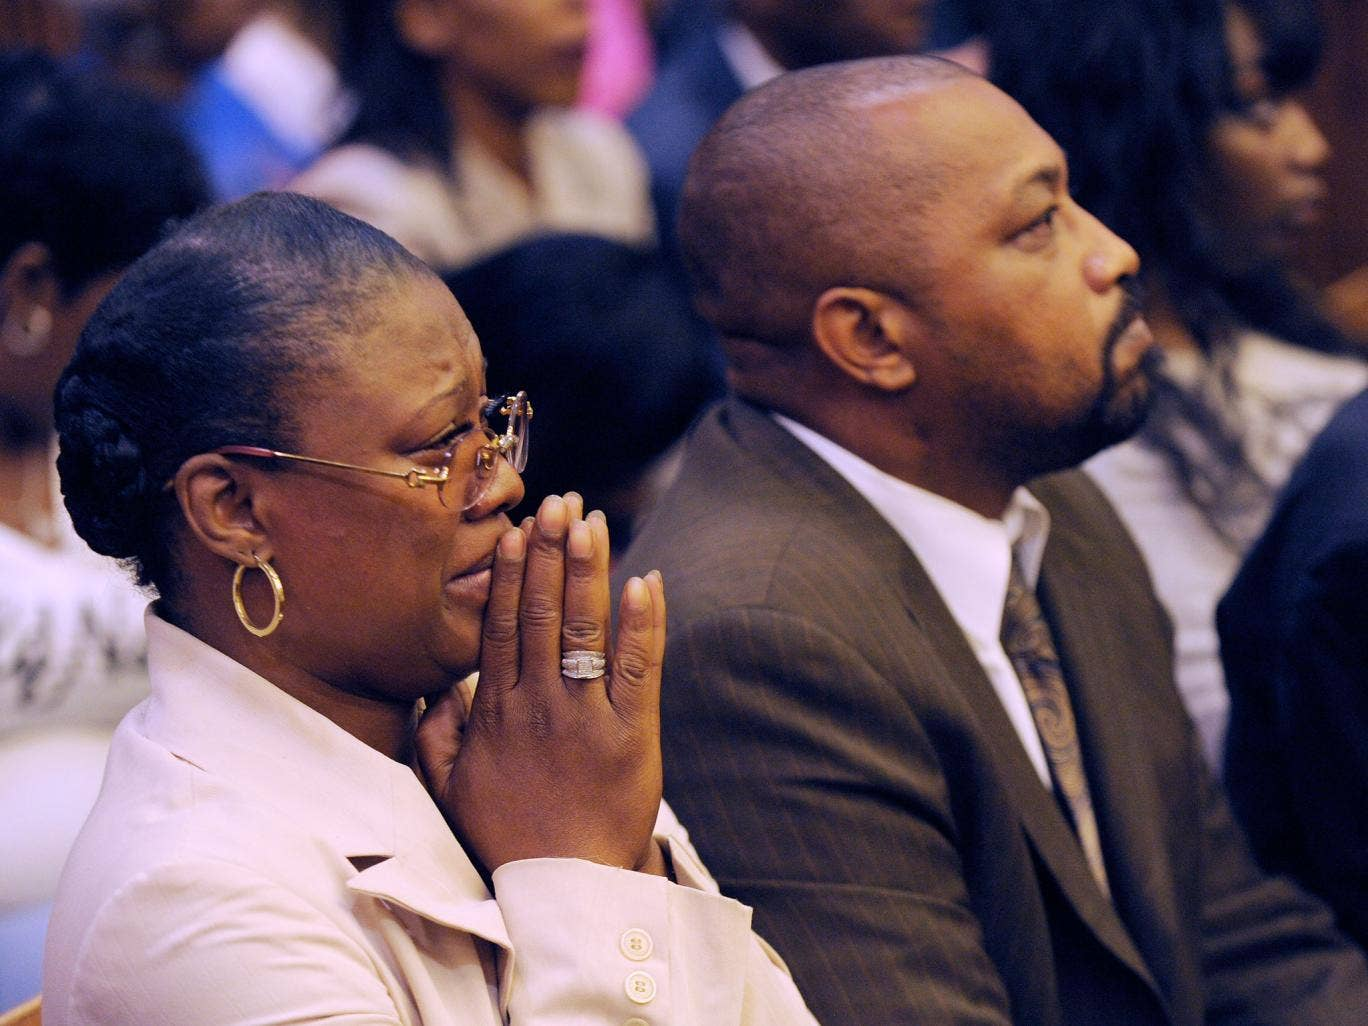 Monica McBride, mother of Renisha McBride, cries during the reading of verdict of guilty of of second-degree murder and manslaughter for Theodore Wafer. Walter Ray Simmons, Renisha's father, is by her side